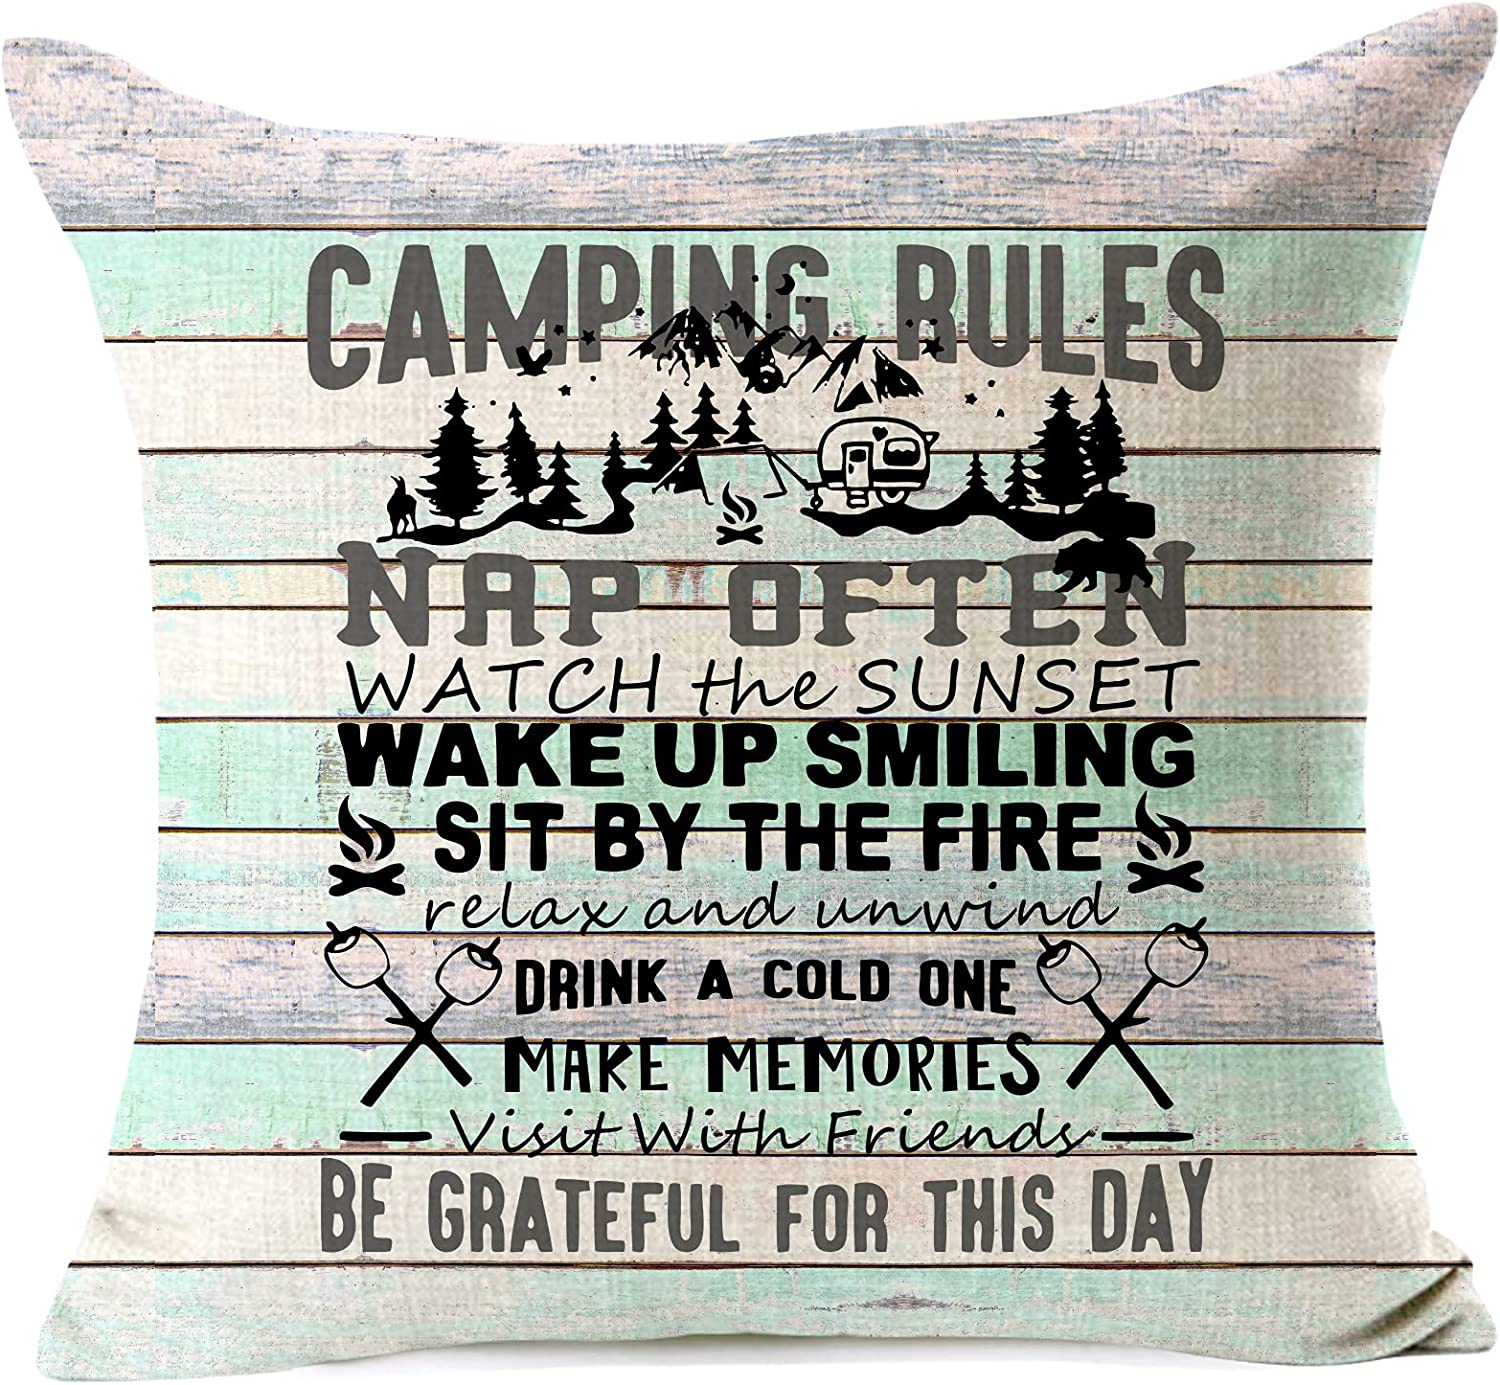 963RW Camping Rules Make Memories Family and with Friends Enjoy 2021 Easy-to-use autumn winter new